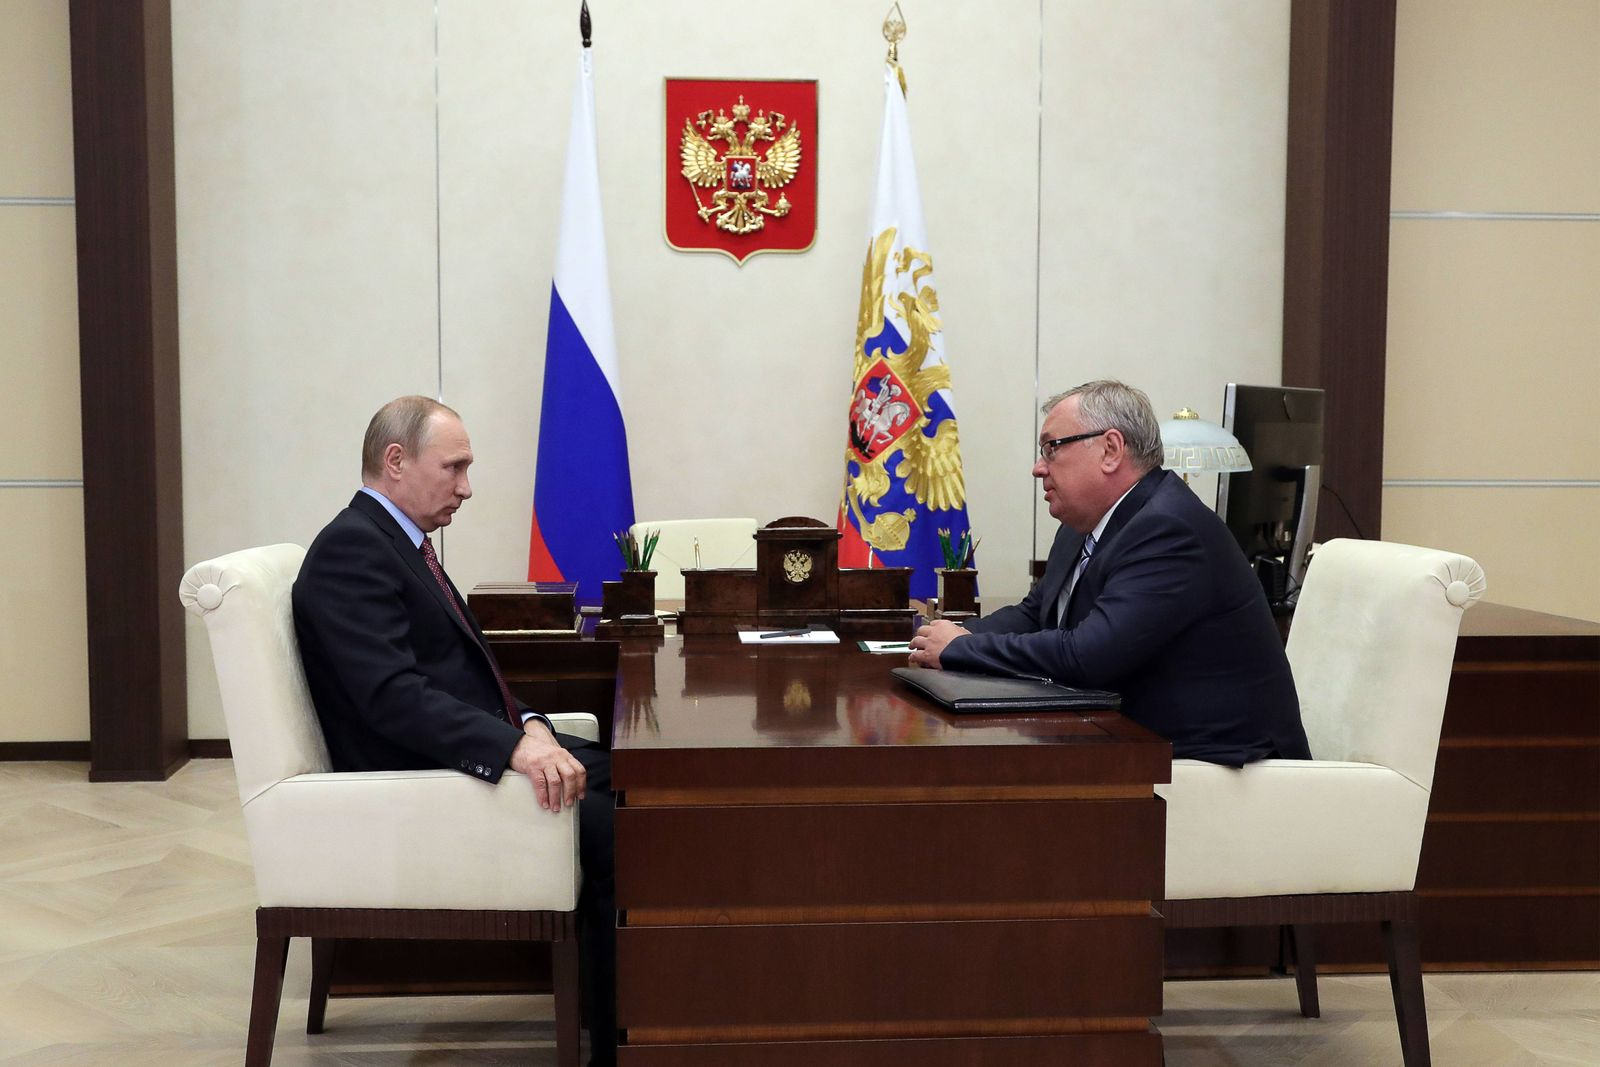 MOSCOW REGION RUSSIA AUGUST 17 2017 Russia s President Vladimir Putin L meets with Andrei Kos